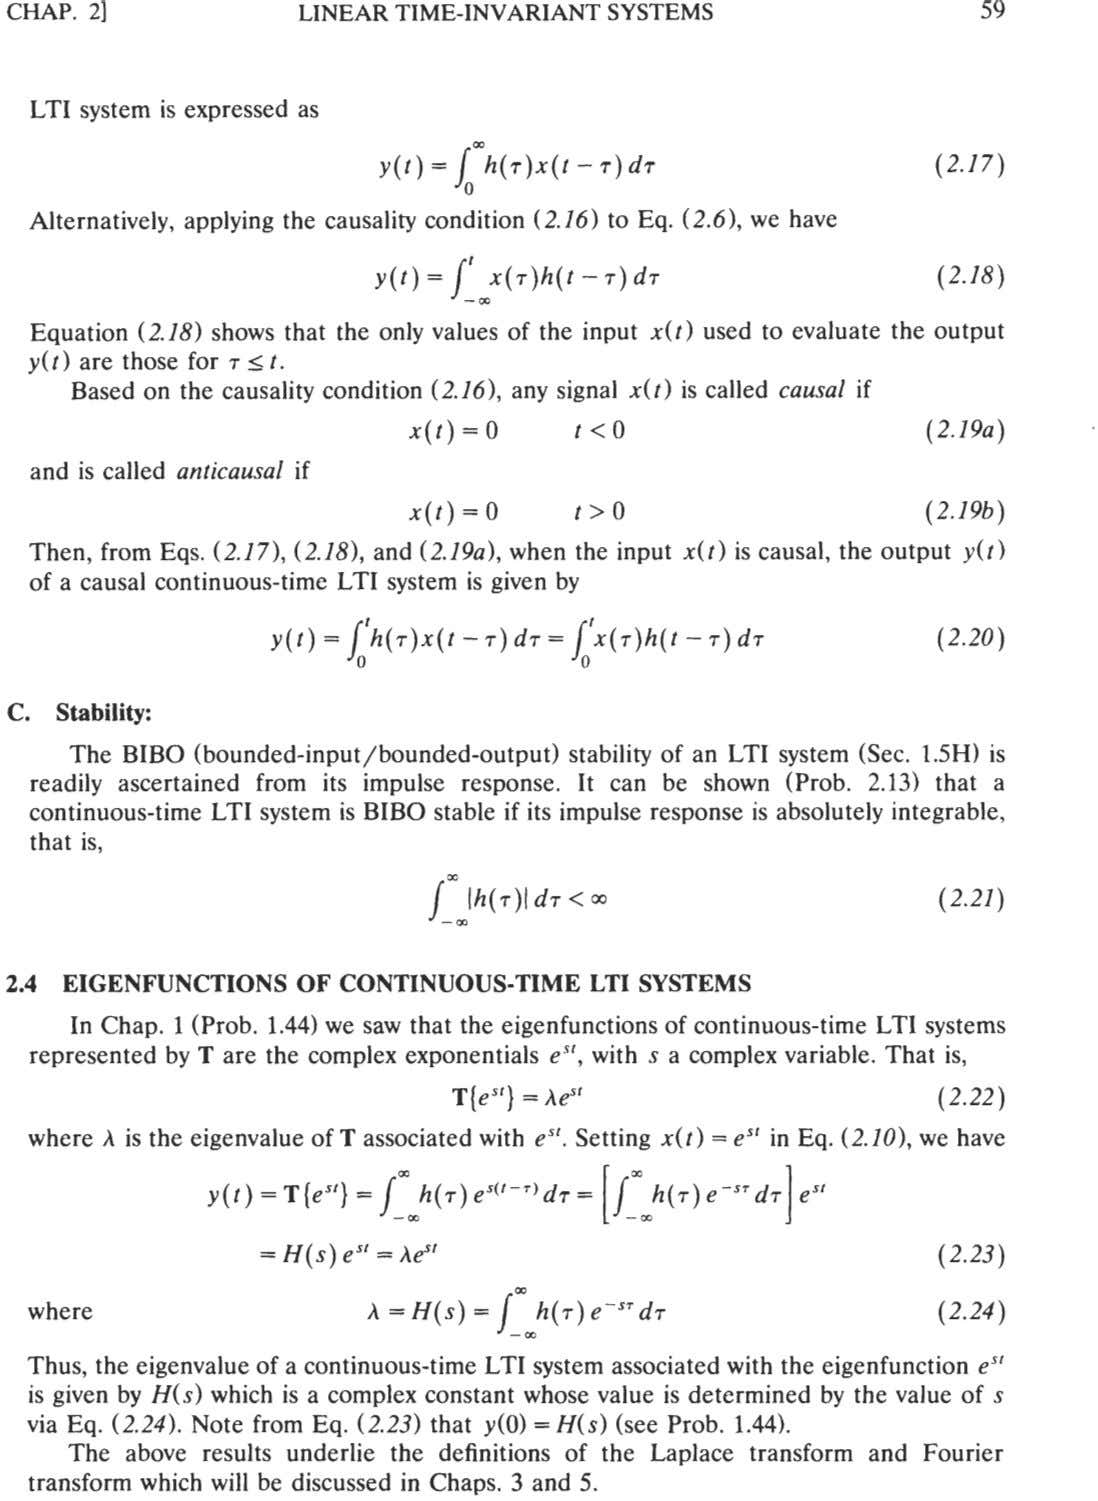 CHAP. 21 LINEAR TIME-INVARIANT SYSTEMS LTI system is expressed as Alternatively, applying the causality condition